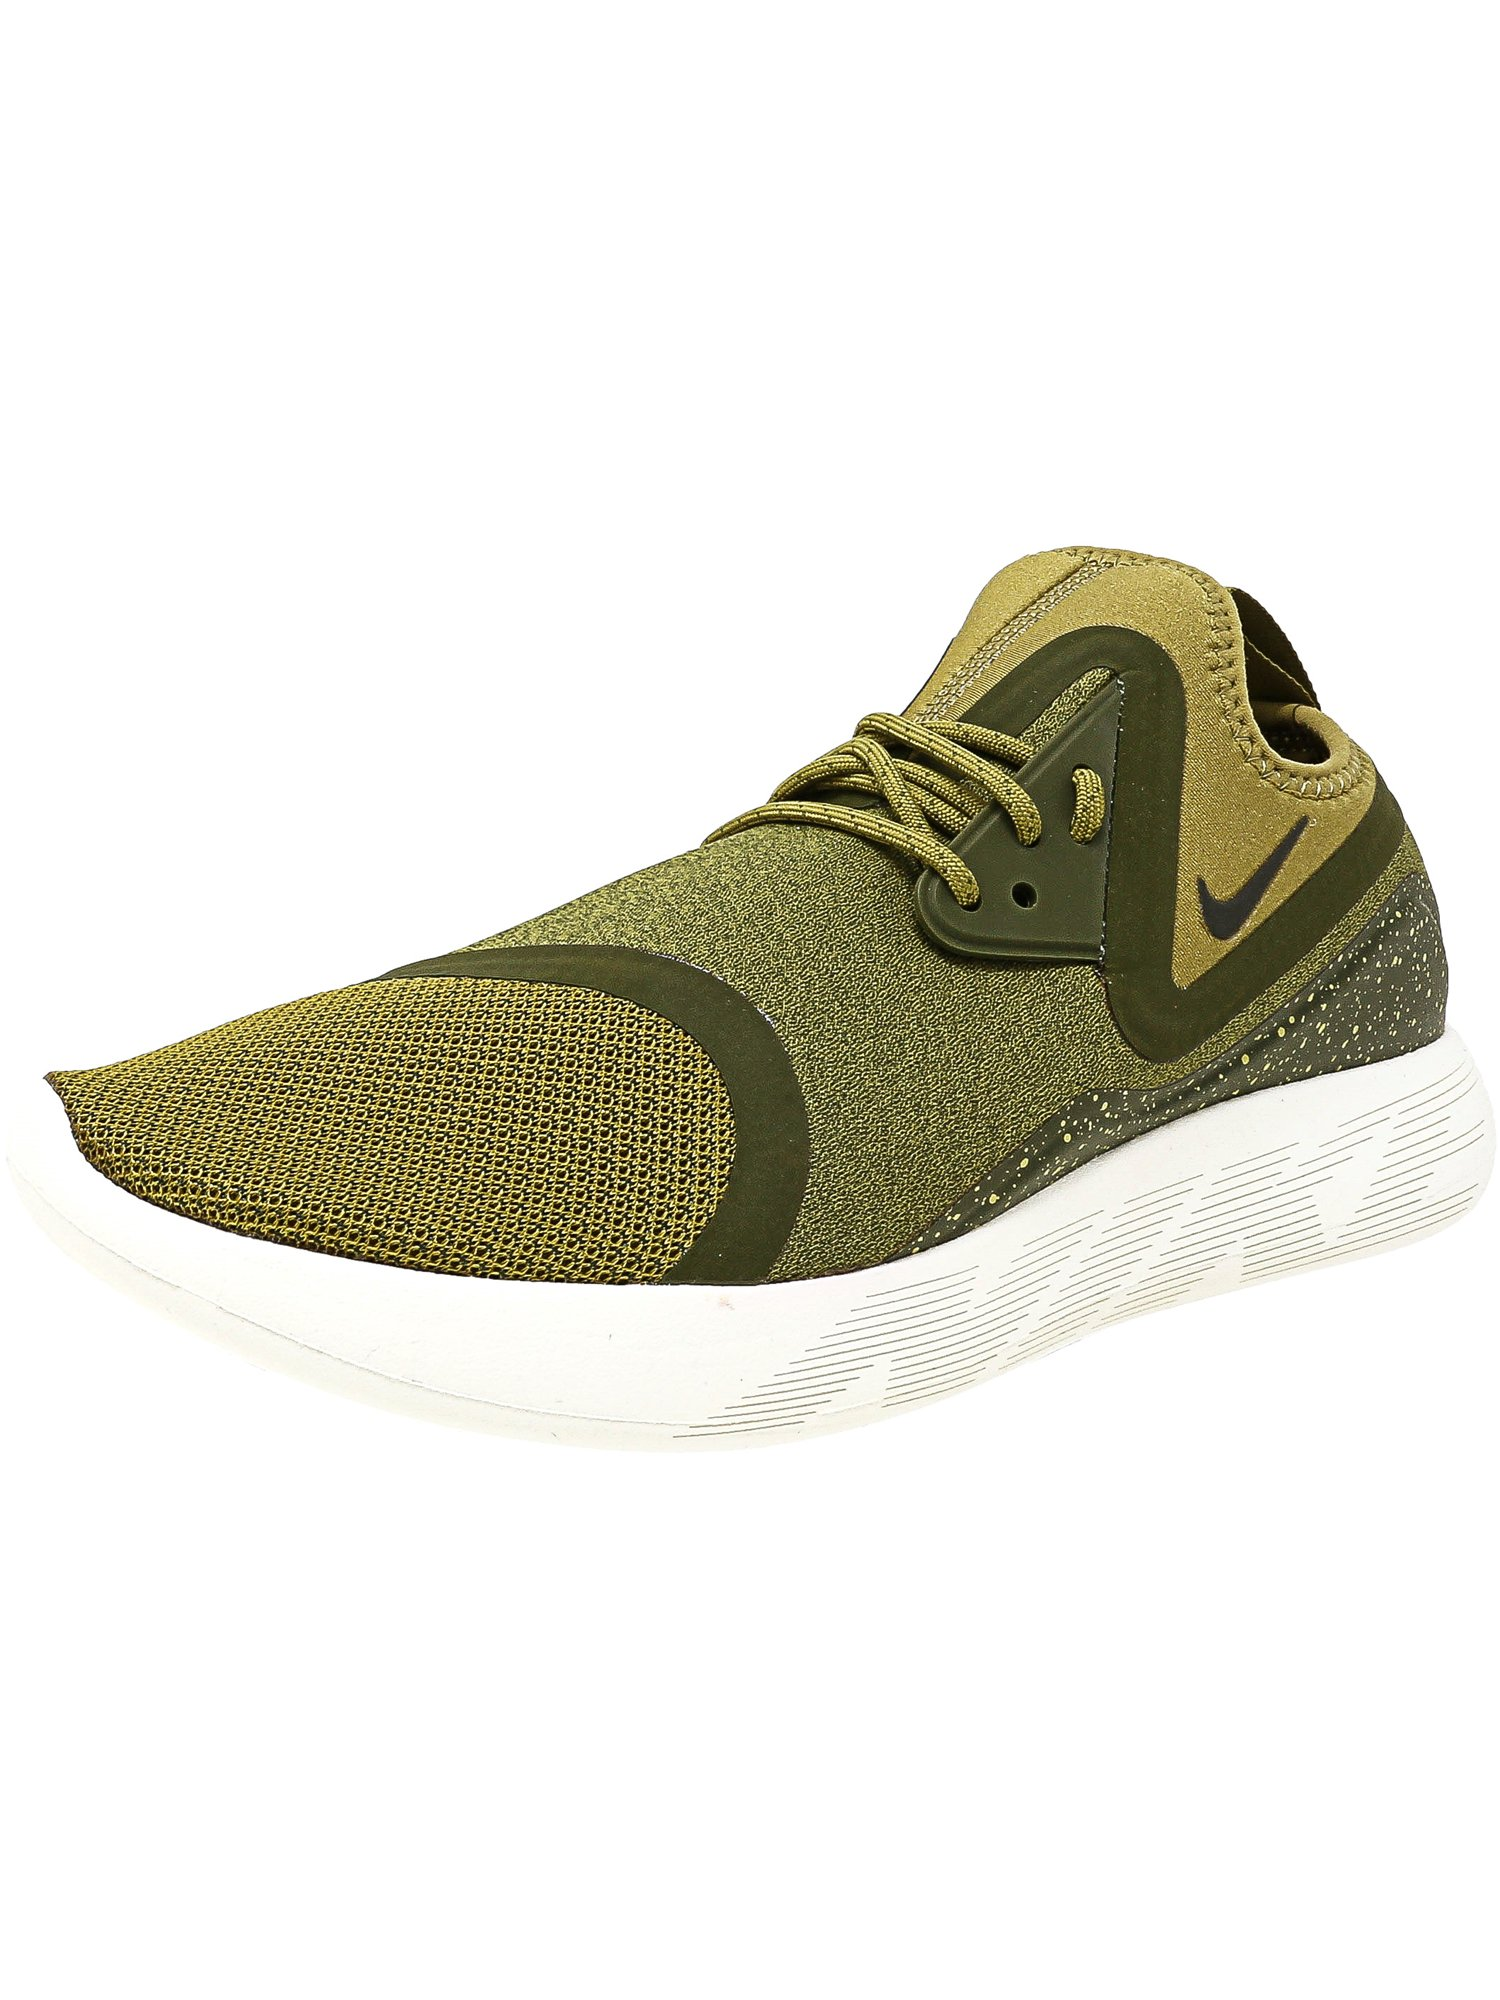 Essential High Moon Men's Blue Lunarcharge Nike Ankle Binary Volt zVSUpM